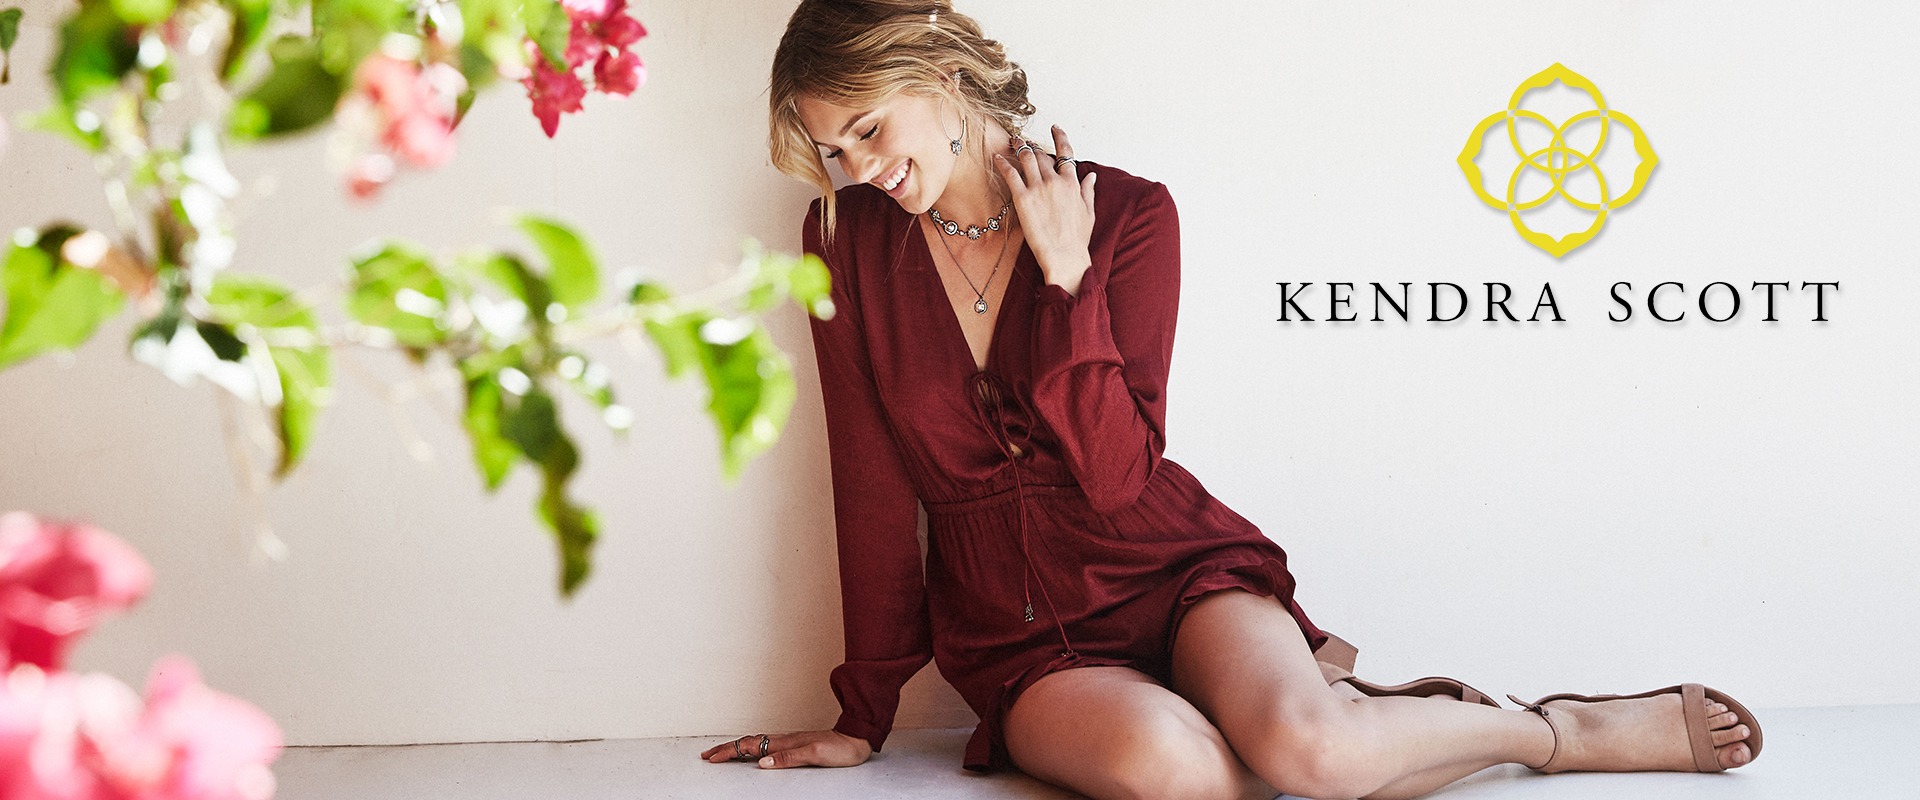 Kendra Scott Spring Collection